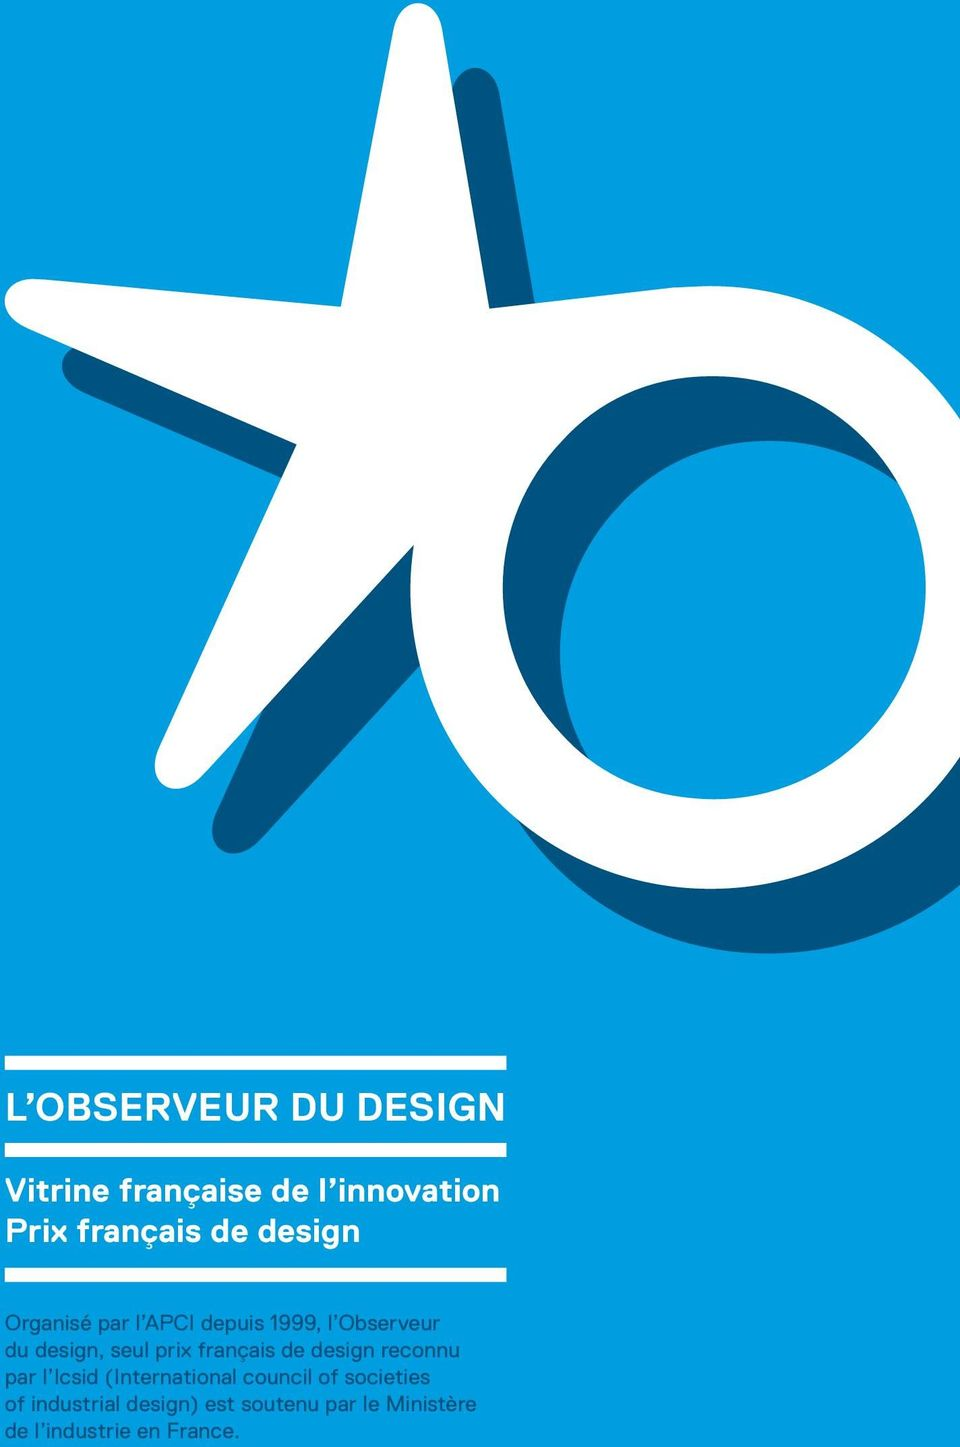 français de design reconnu par l Icsid (International council of societies